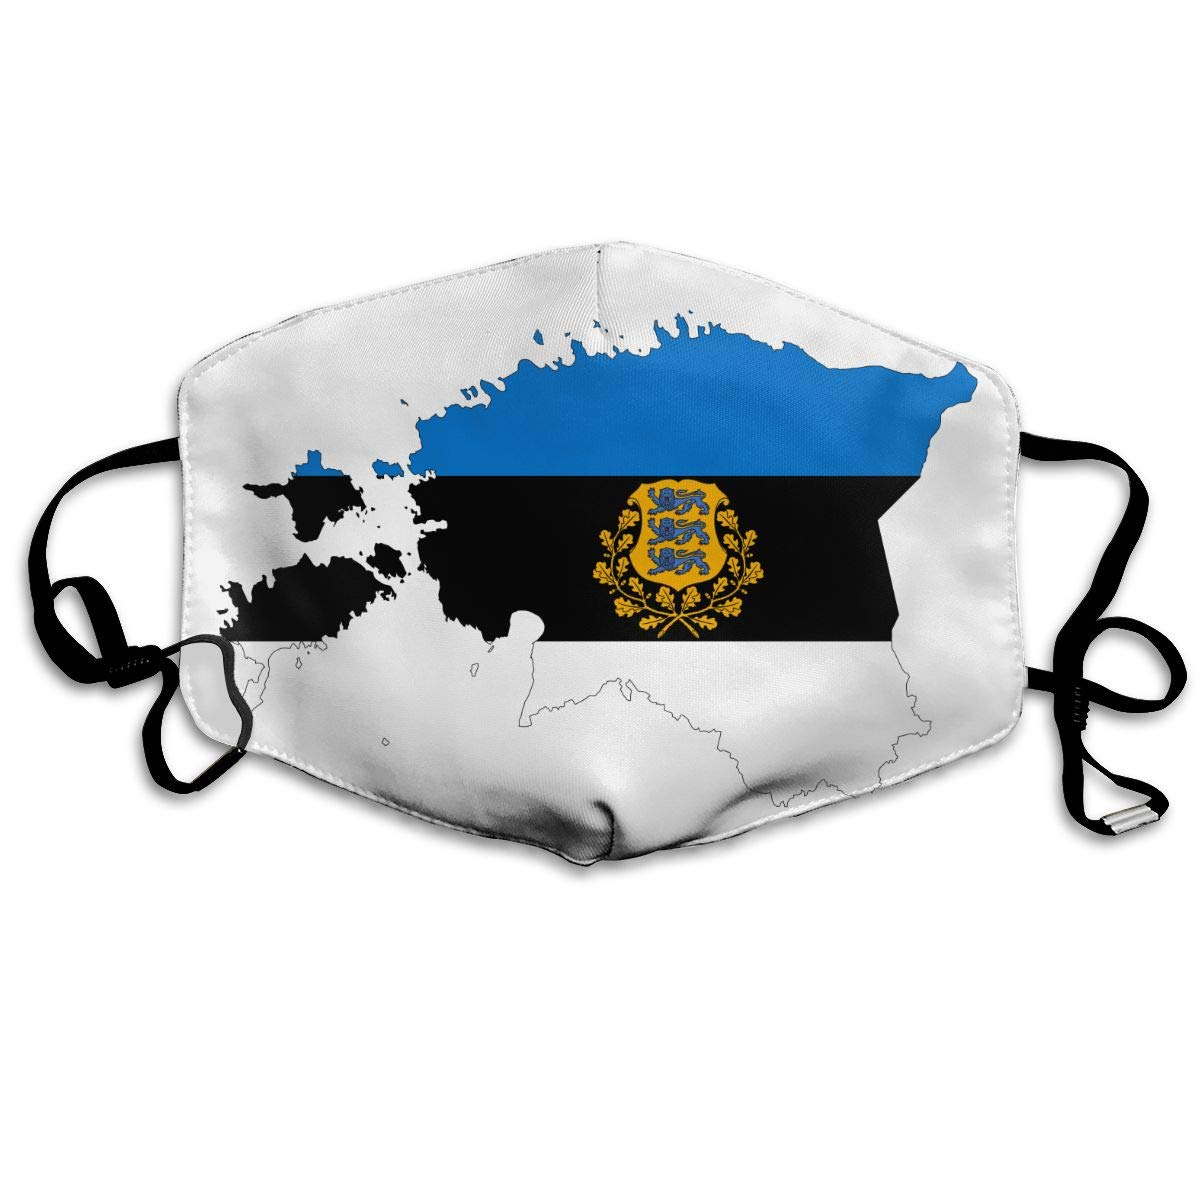 Estonia Map Flag Washable Reusable   Mask, Cotton Anti Dust Half Face Mouth Mask For Kids Teens Men Women With Adjustable Ear